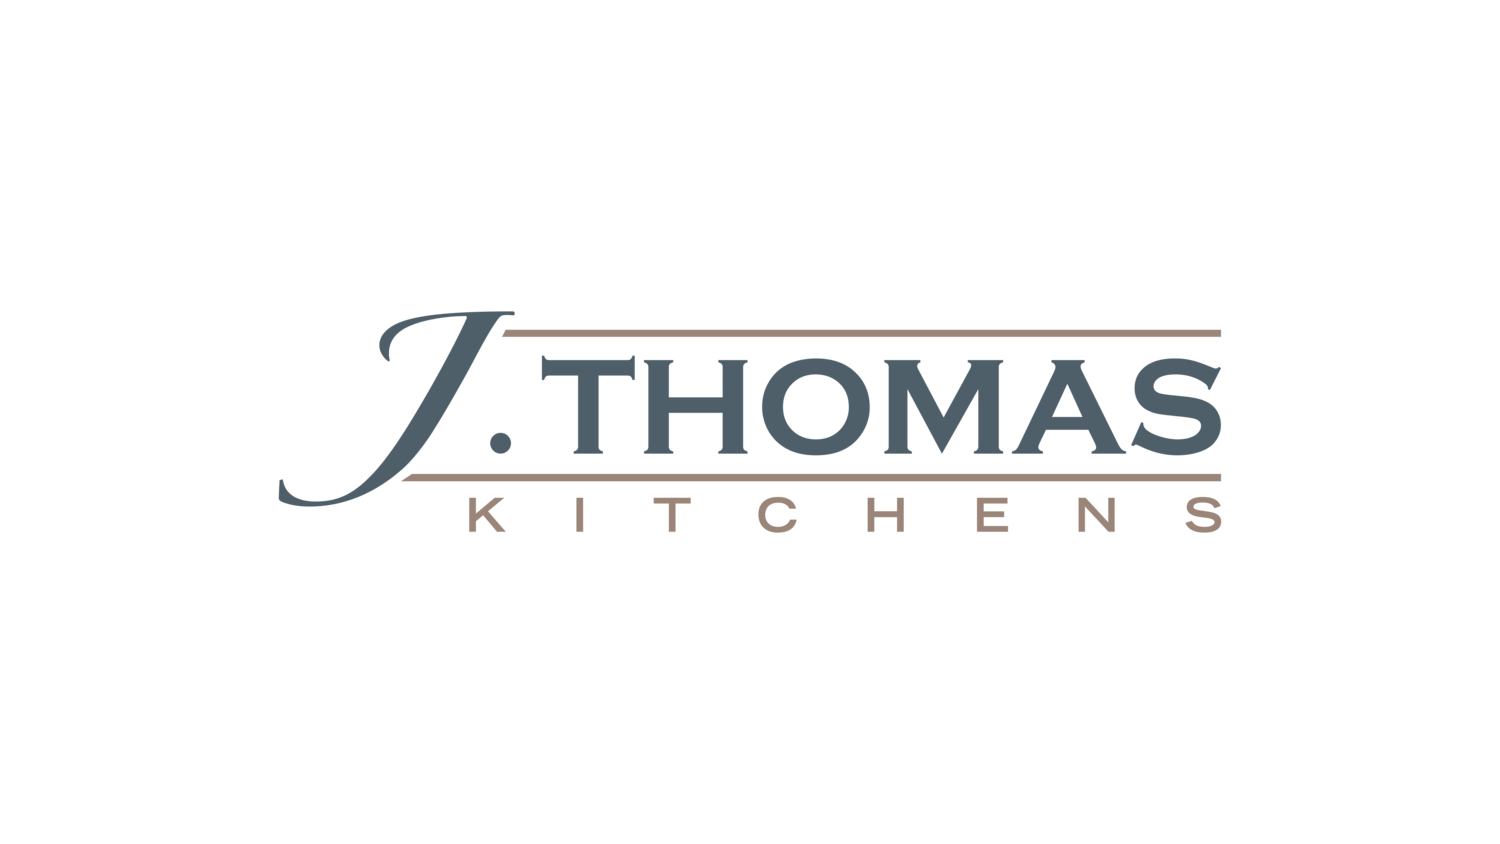 J.Thomas Kitchens